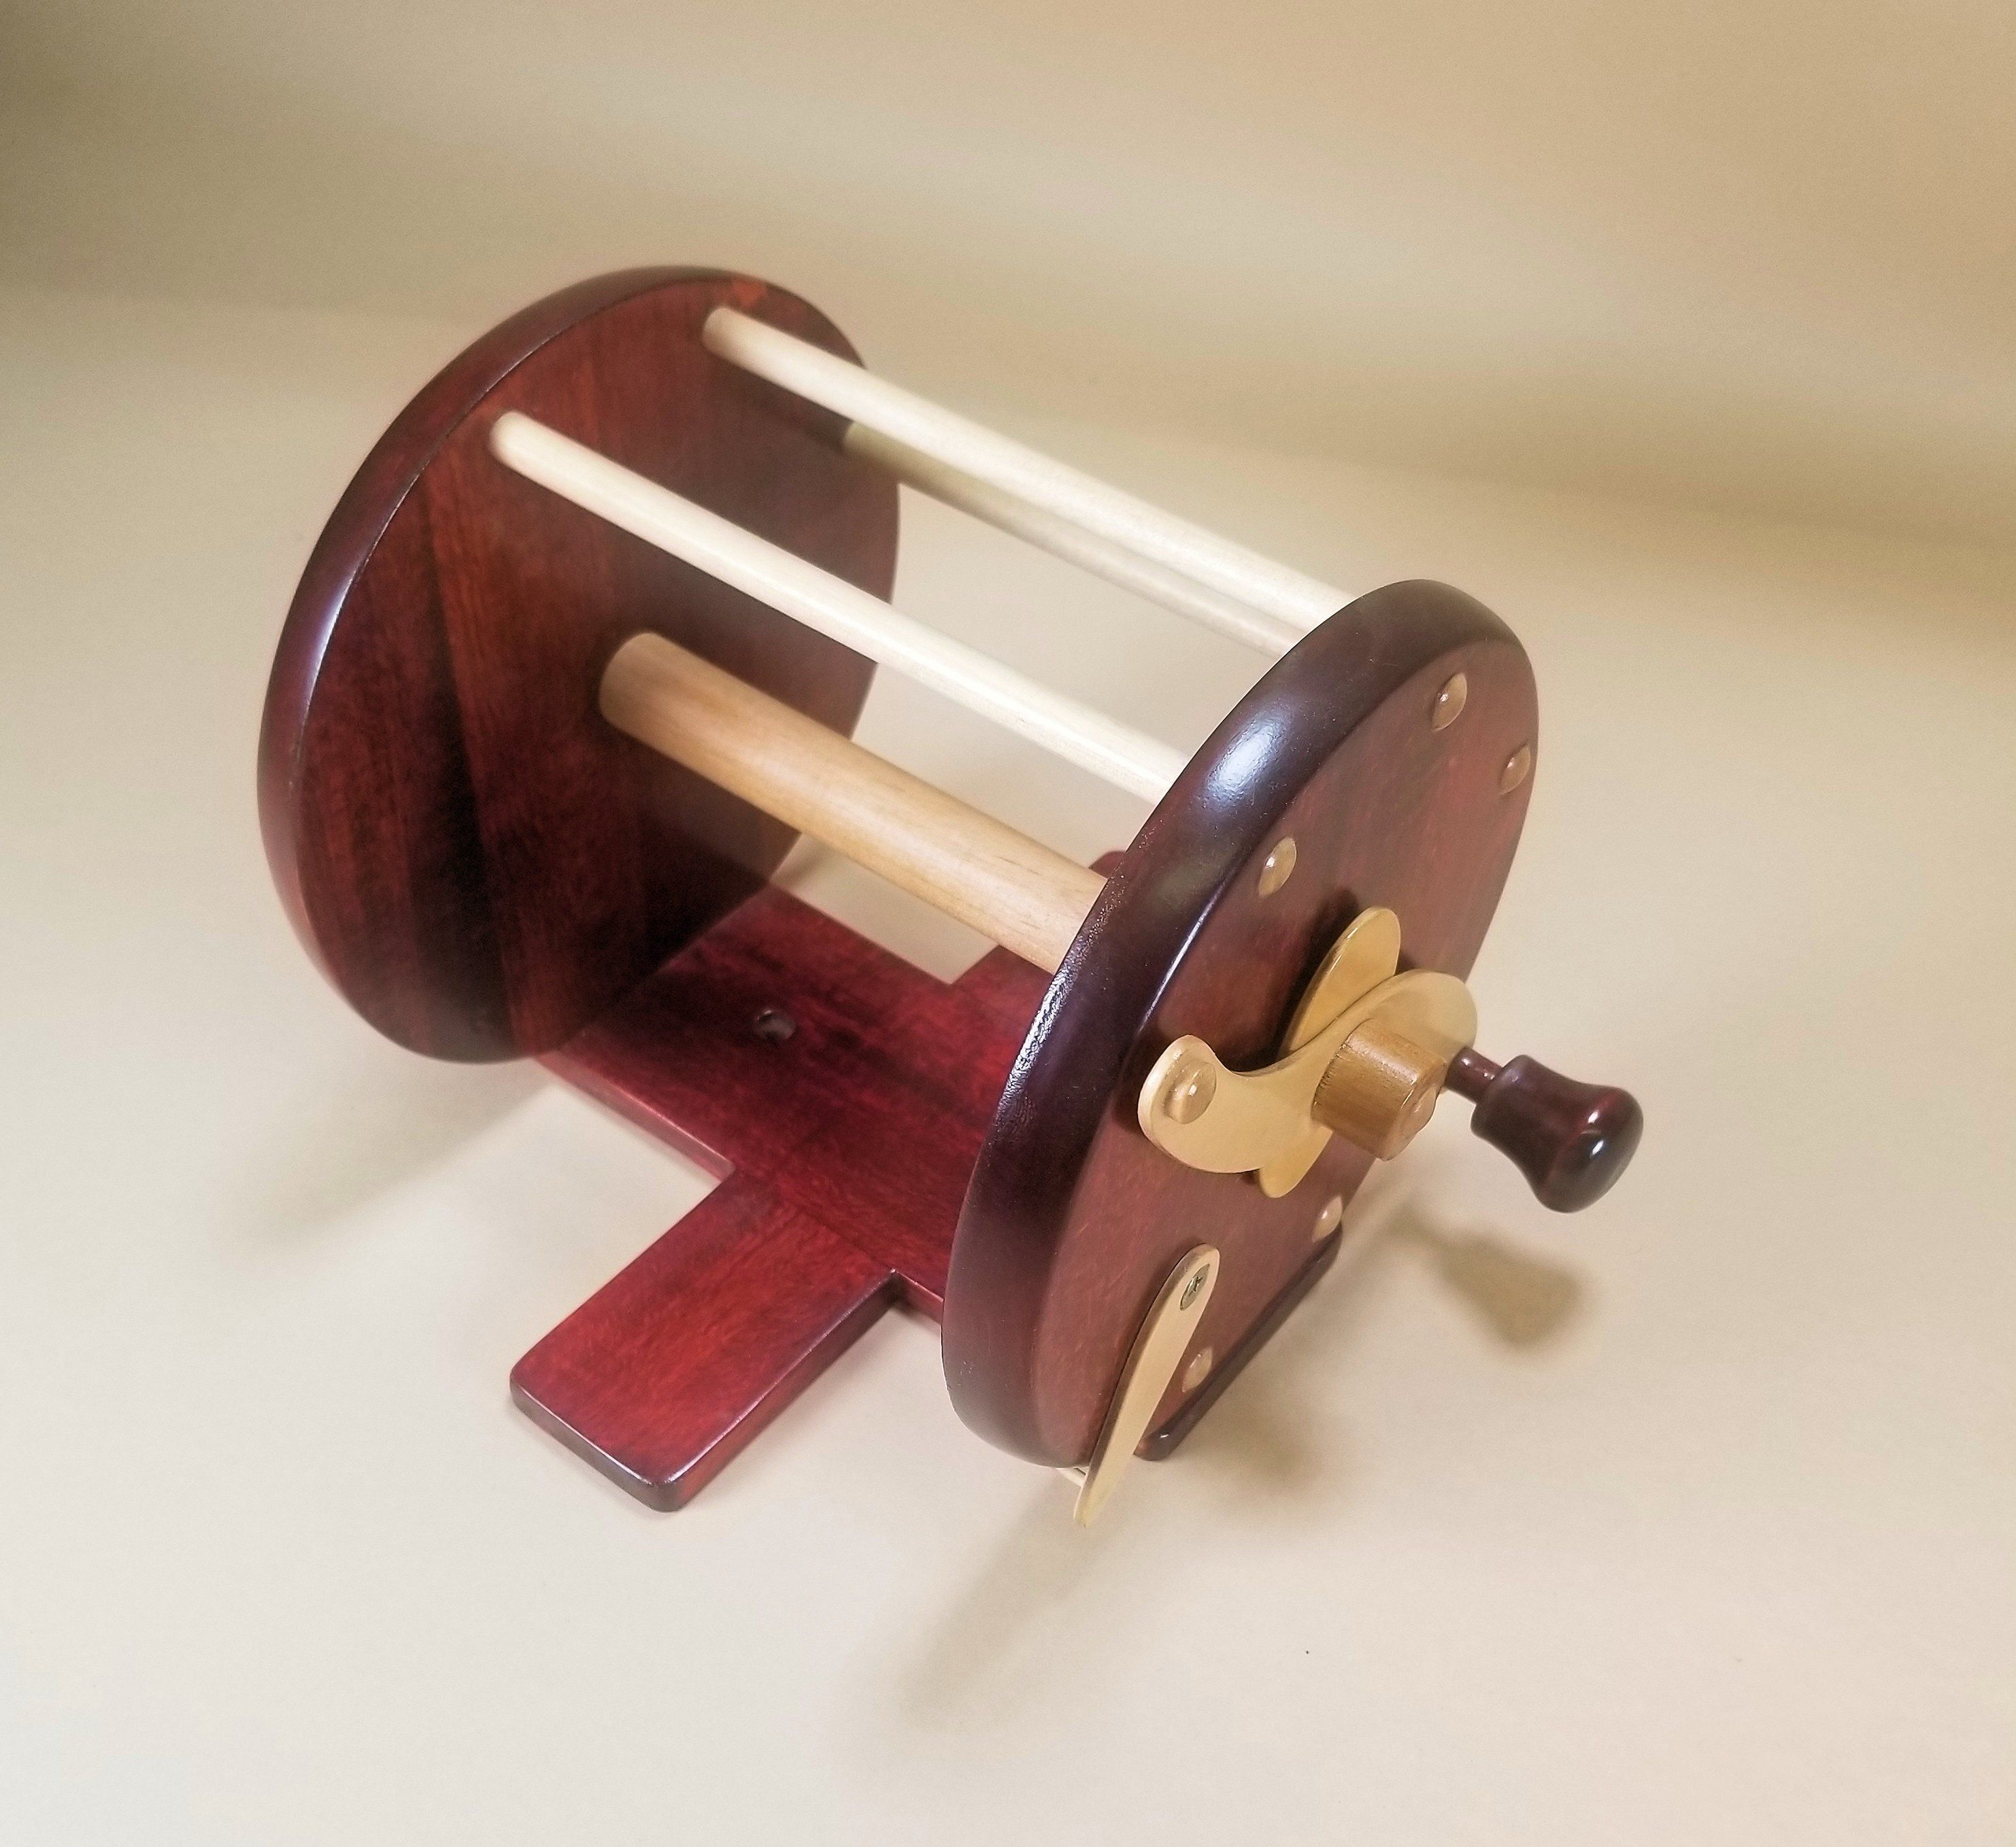 Beautiful Wooden Toilet Paper Fishing Reel Toilet Paper Holders-Mounted Carvers Olde Iron